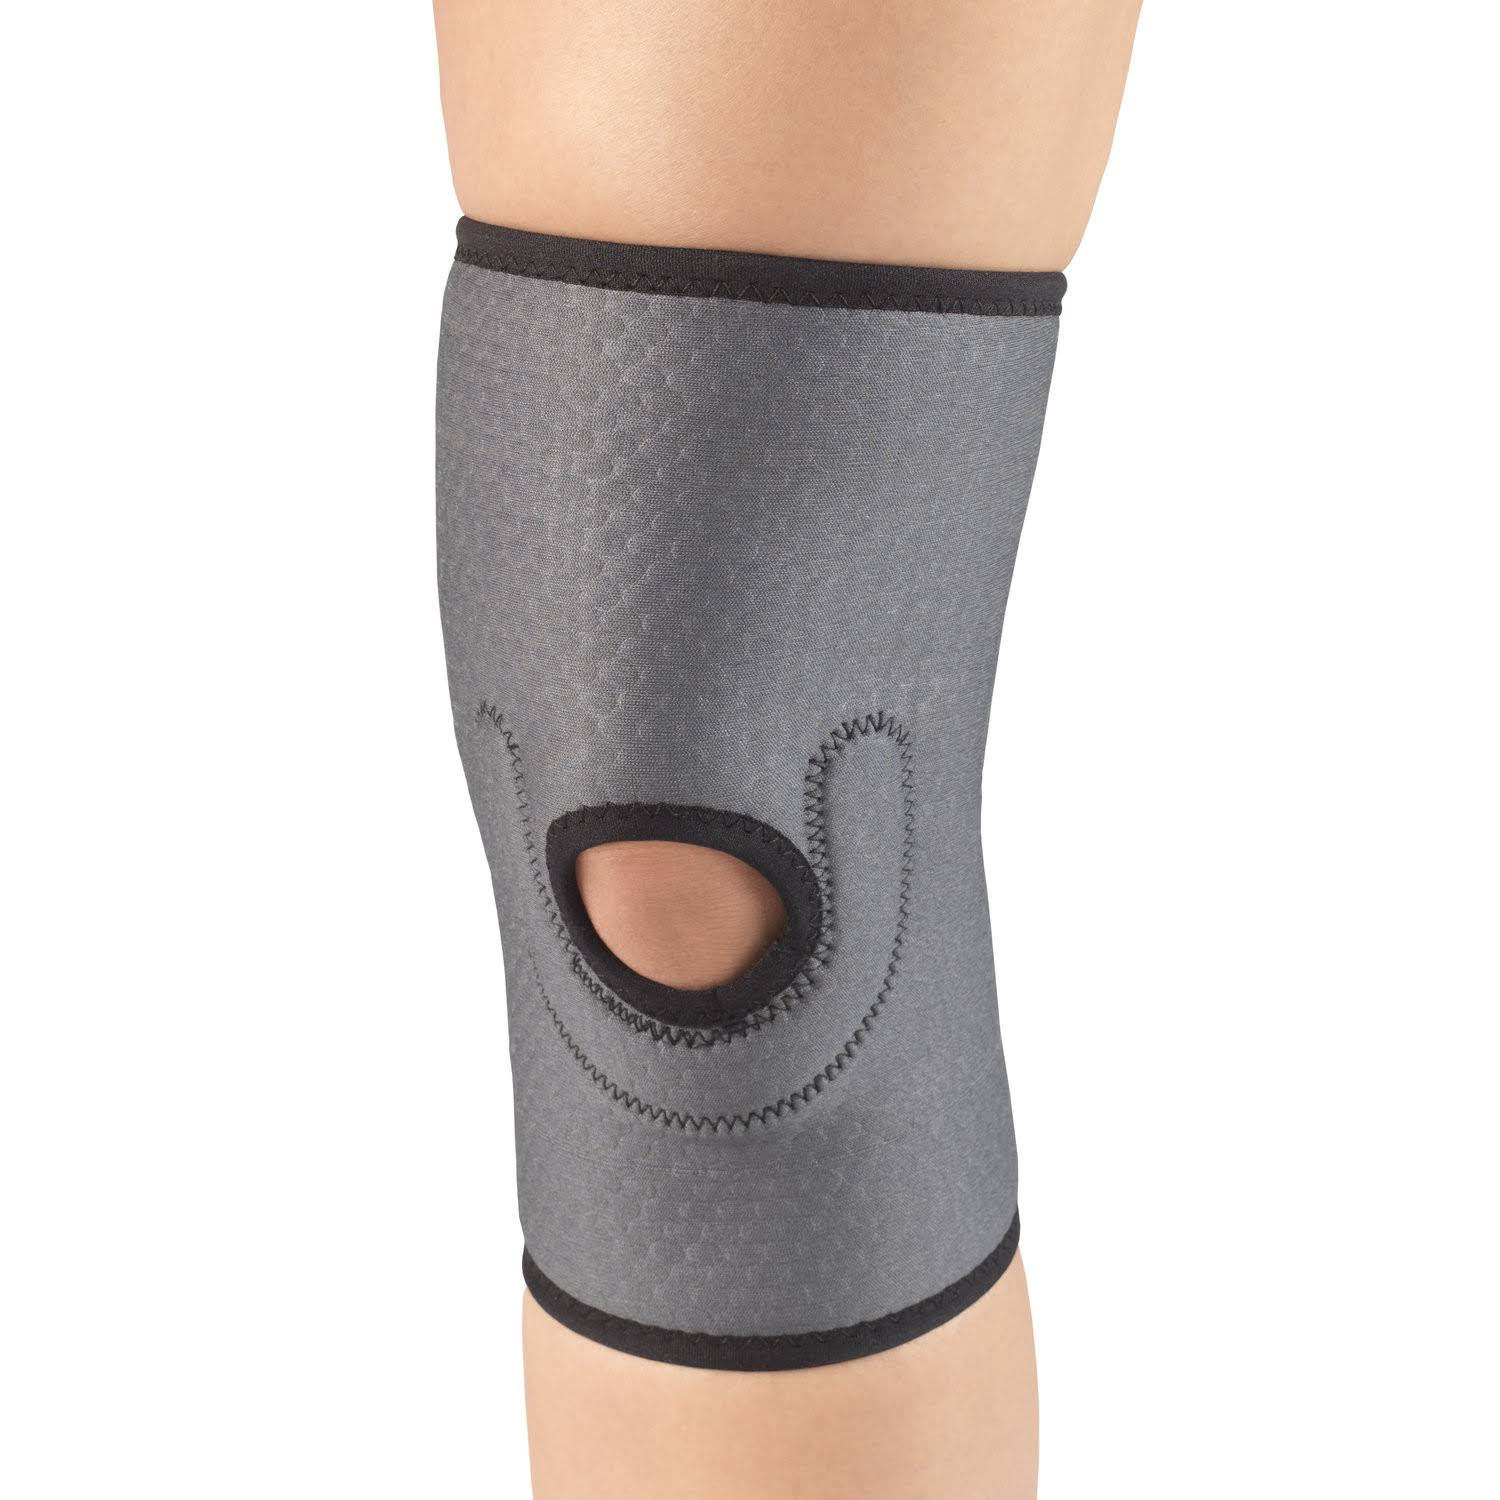 Champion Airmesh Knee Support - With Stabilizer Pad, Grey, Large